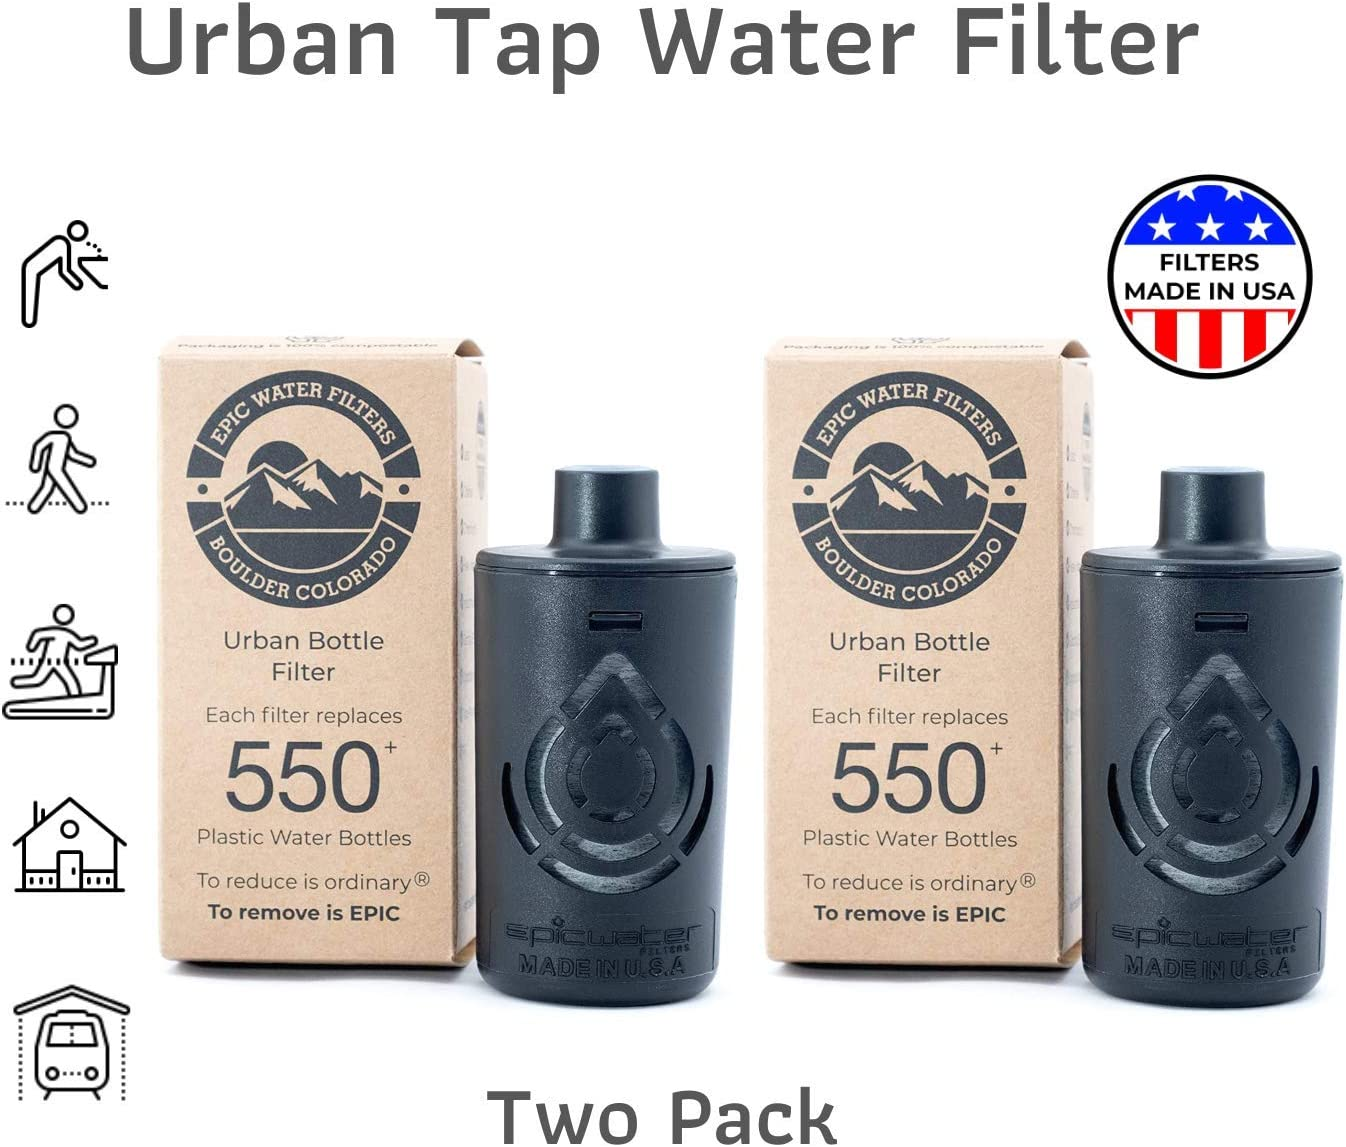 Epic Urban Bottle Multi Pack Filters | Replacement Filter for Naglene OG, Escape, Kiddo, The Answer (Hydro Flask, Nalgene Compatible) | 4-Month Filter Life | Removes Chlorine, Lead, PFC & More